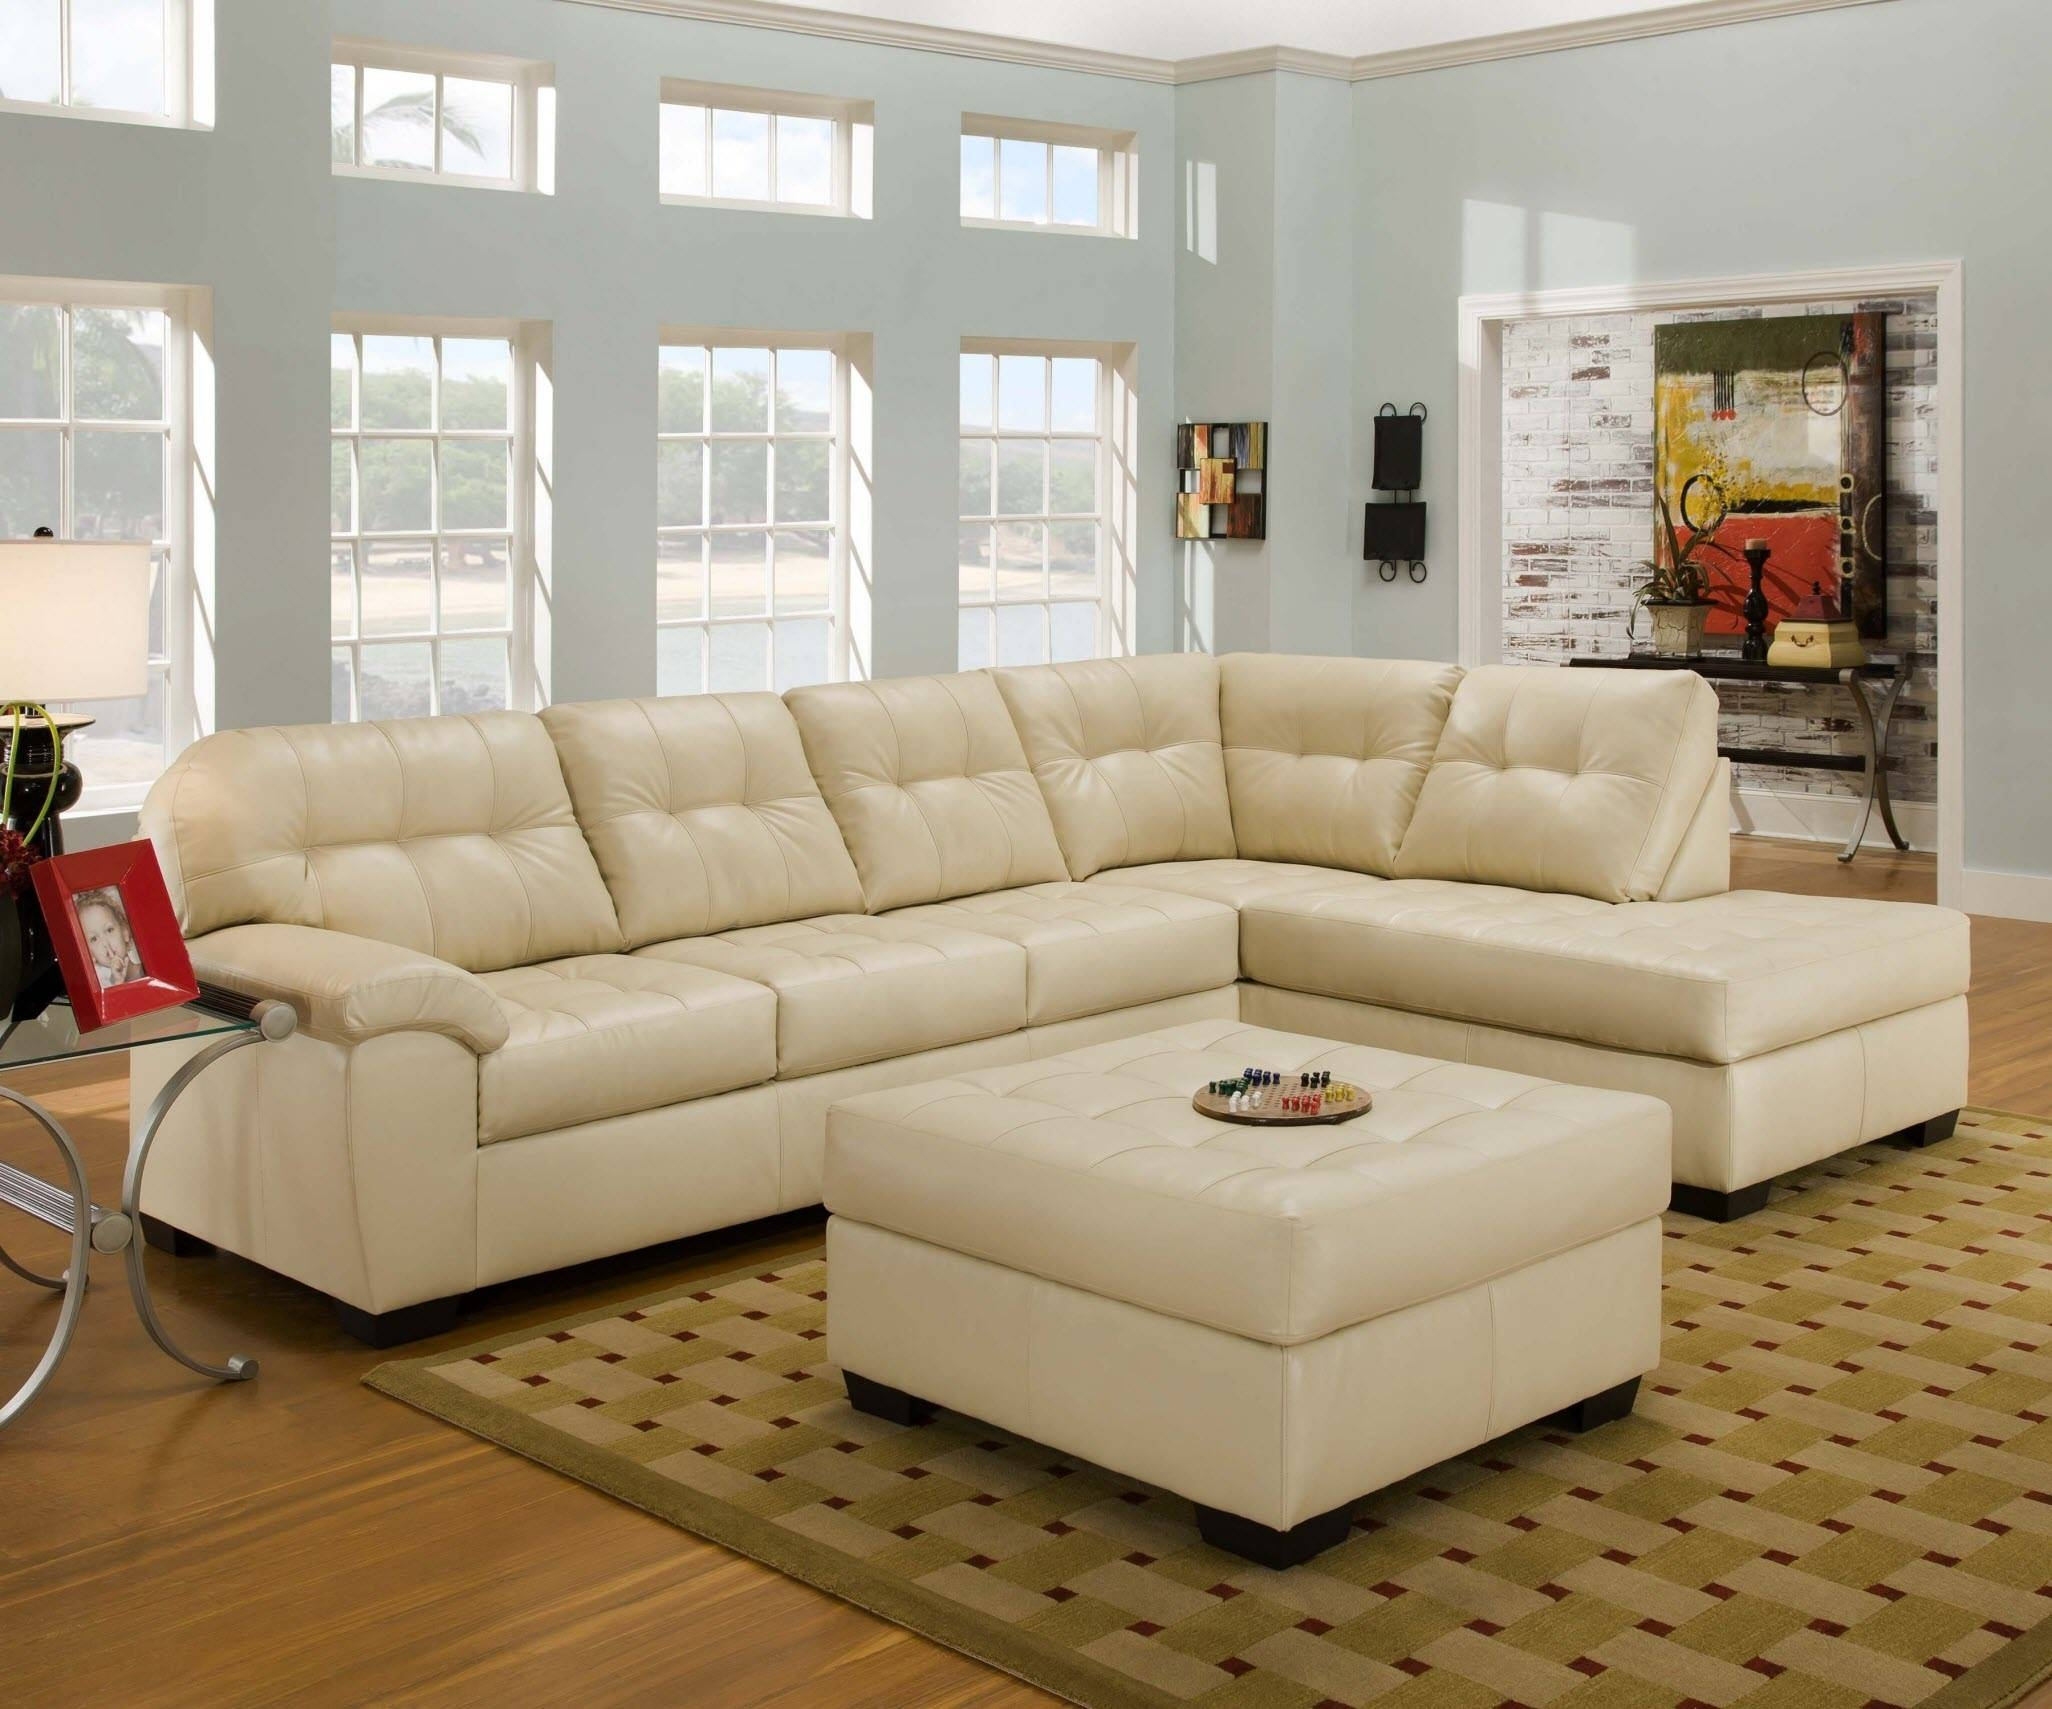 Sofa. Amazing Tufted Sectional With Chaise: Awesome-Tufted intended for Tufted Sectional Sofa Chaise (Image 8 of 25)